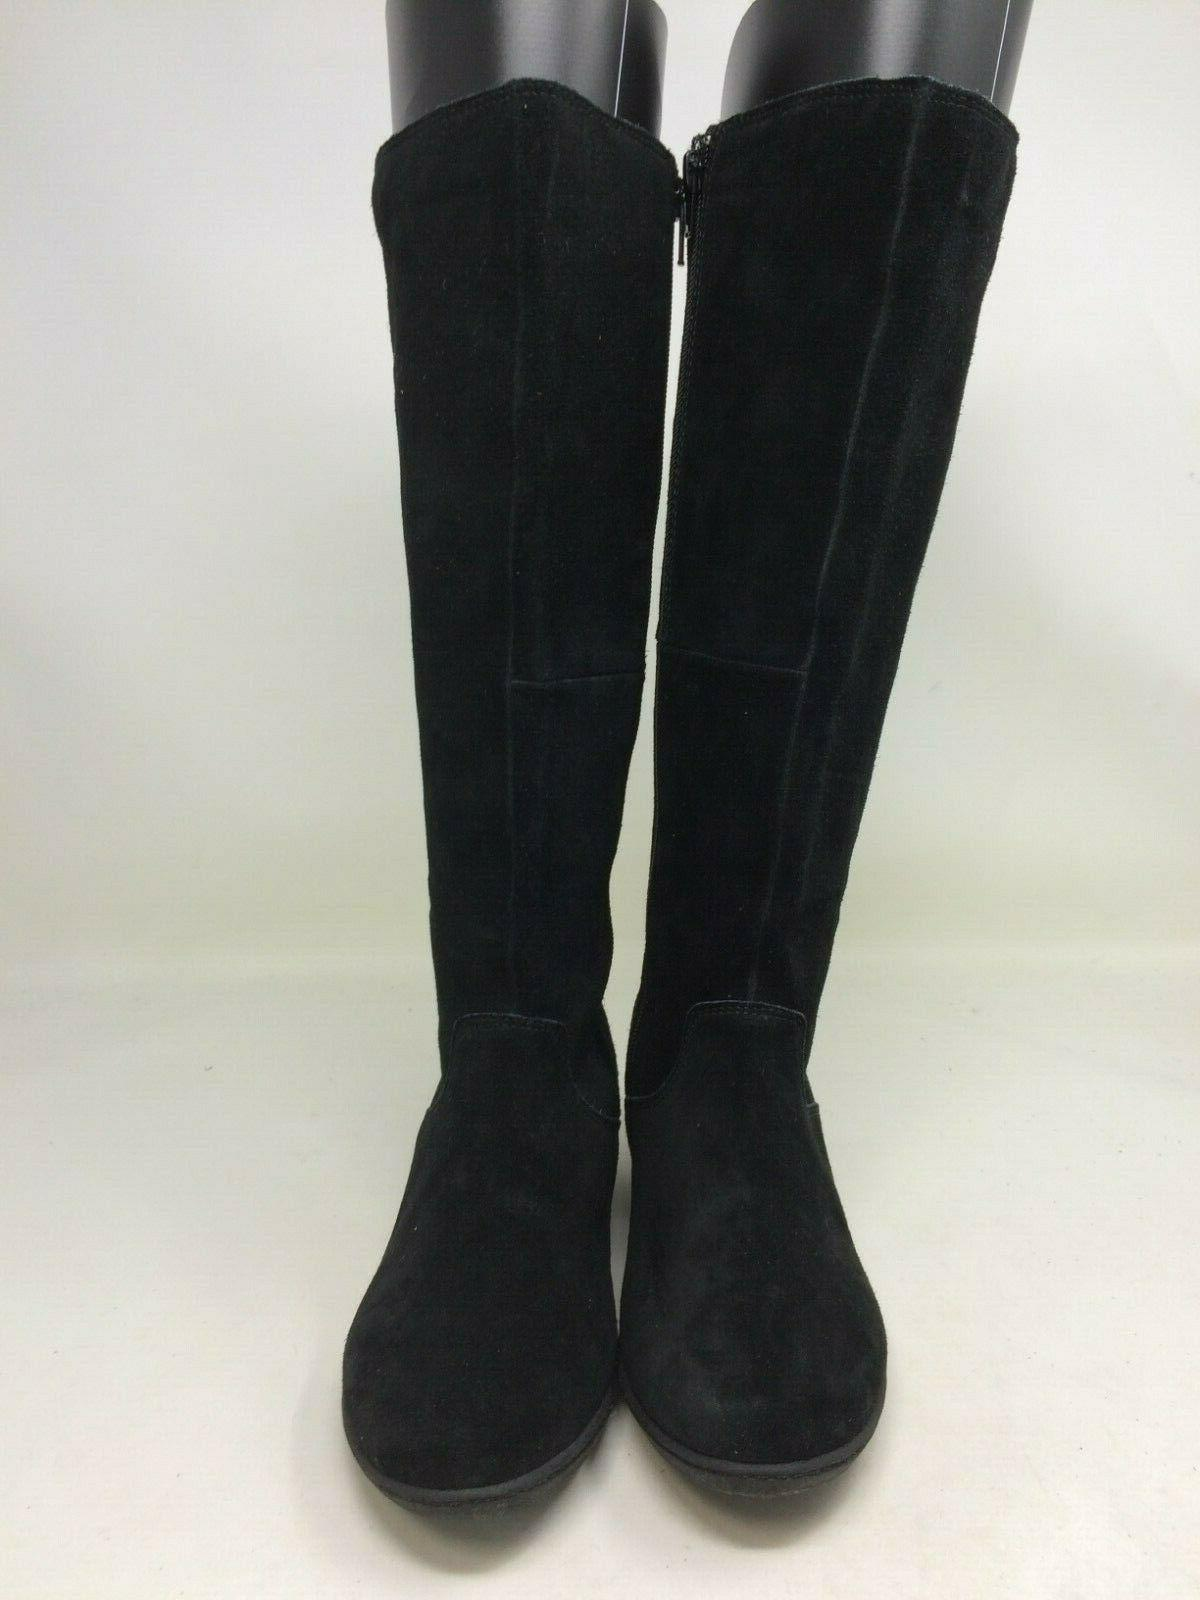 New! - 48474 boots